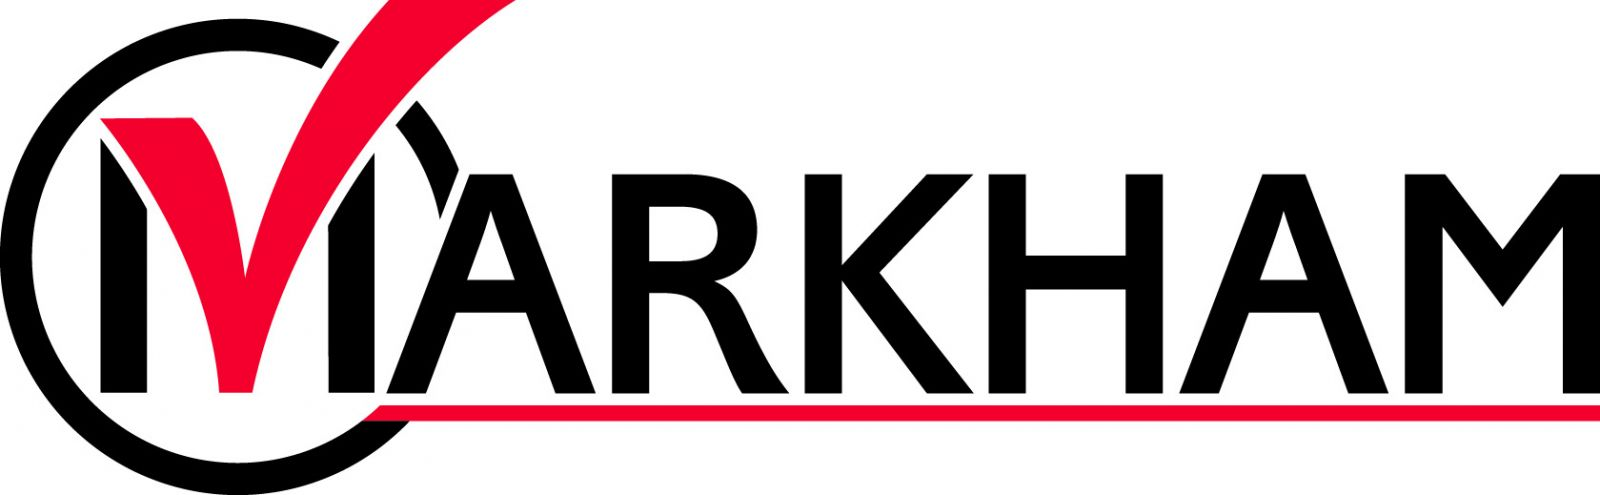 If you're ready for a new and challenging job, take a look at our wide range of Markham, Illinois jobs. Whatever type of job in Markham you're seeking, you can find it on Monster. View our listings of Markham job opportunities and find your perfect fit today.